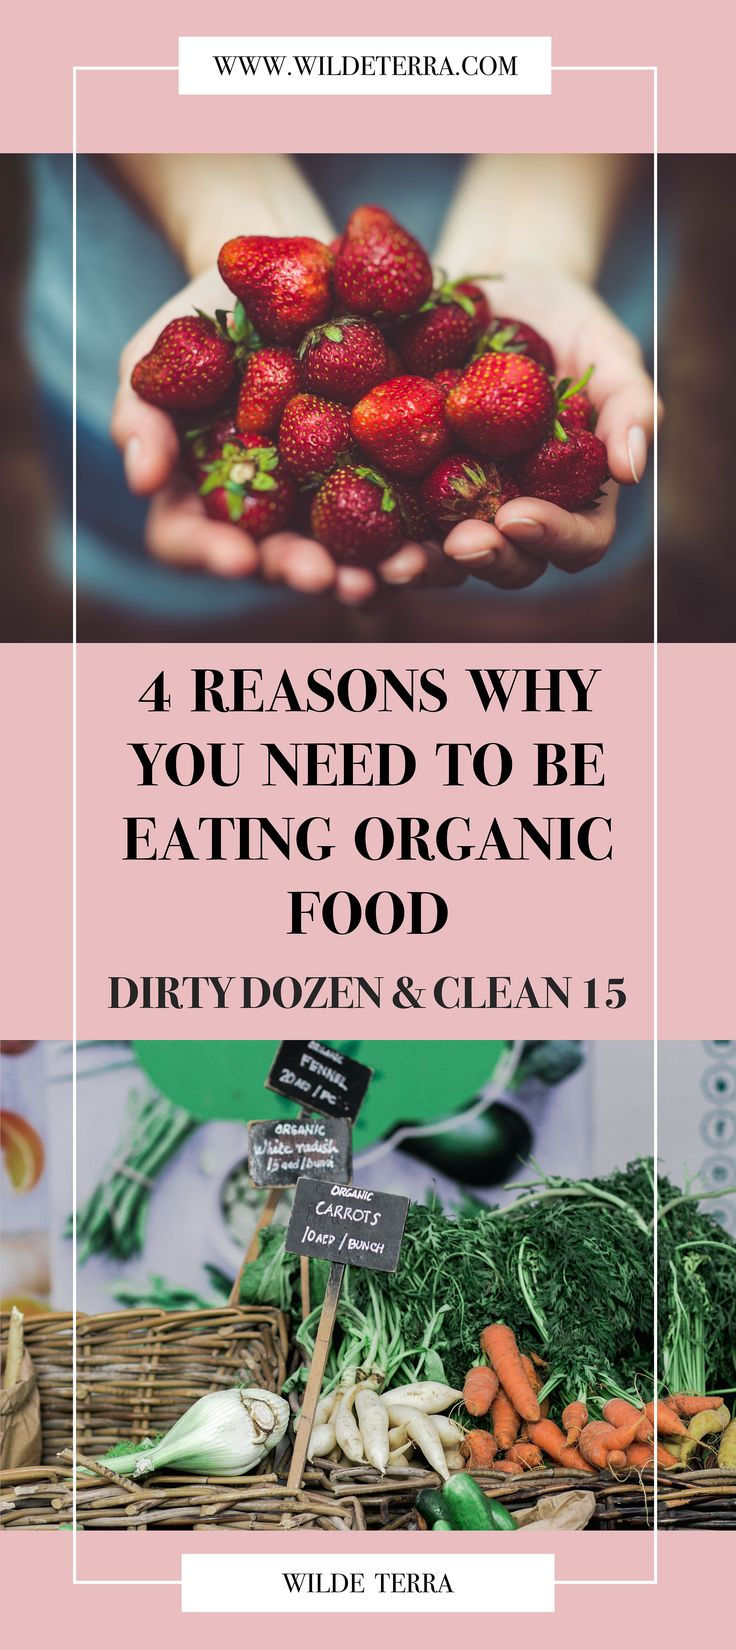 4 REASONS YOU NEED TO START EATING ORGANIC FOOD & DIRTY DOZEN, CLEAN 15 TIPS // healthy living, healthy eating, organic food, organic fruit and vegetables, organic eating for beginners, eating organic and clean, clean 15 dirty dozen, why organic food, why organic is better, healthy eating motivation // WILDE TERRA